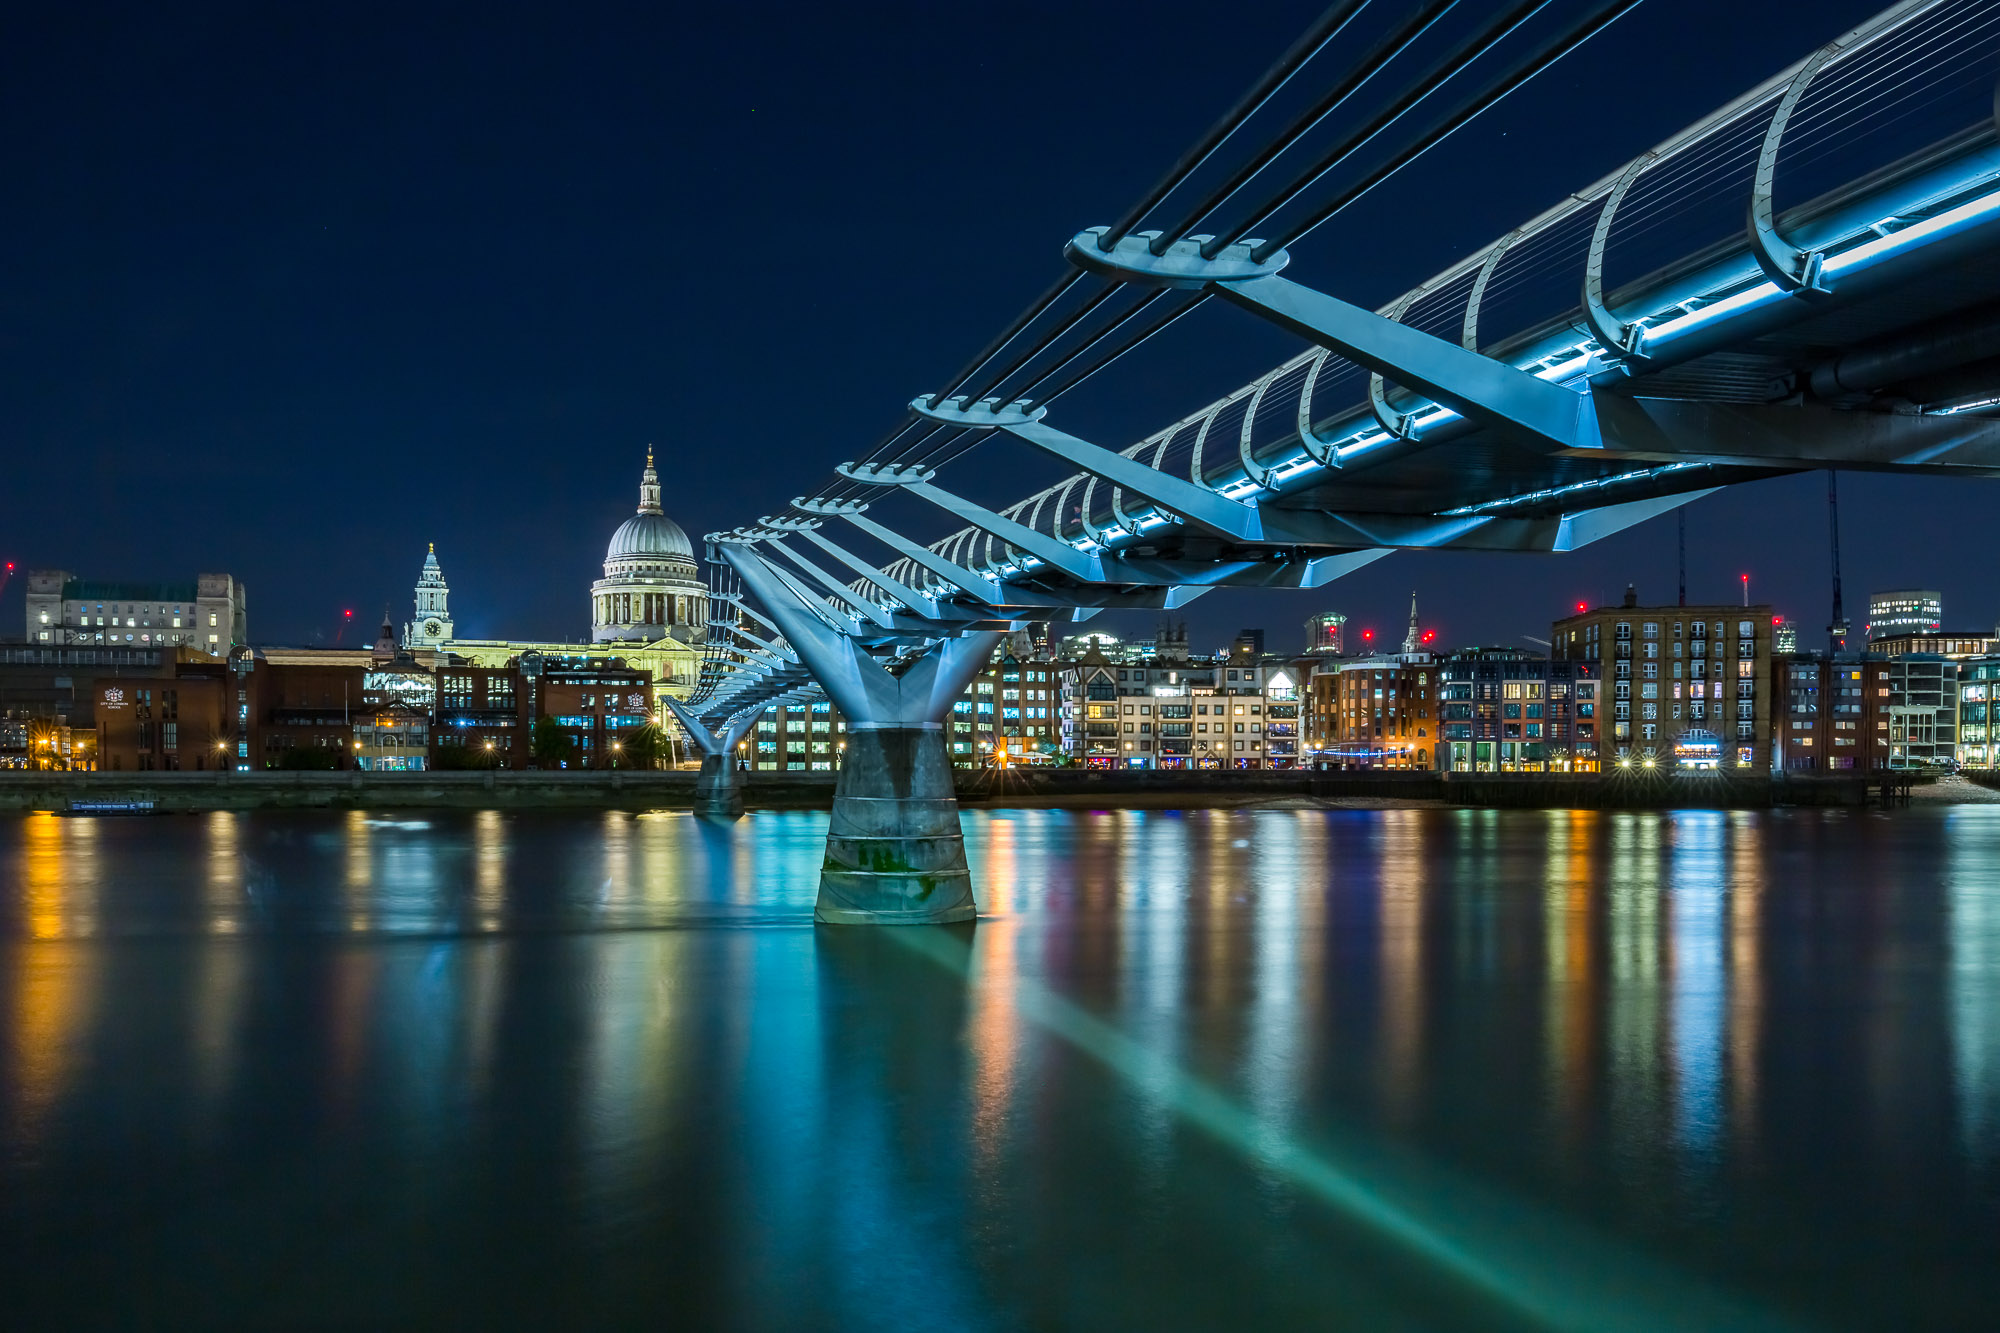 long exposure night photography of the Millennium Bridge and St Pauls Cathedral along the River Thames in London UK